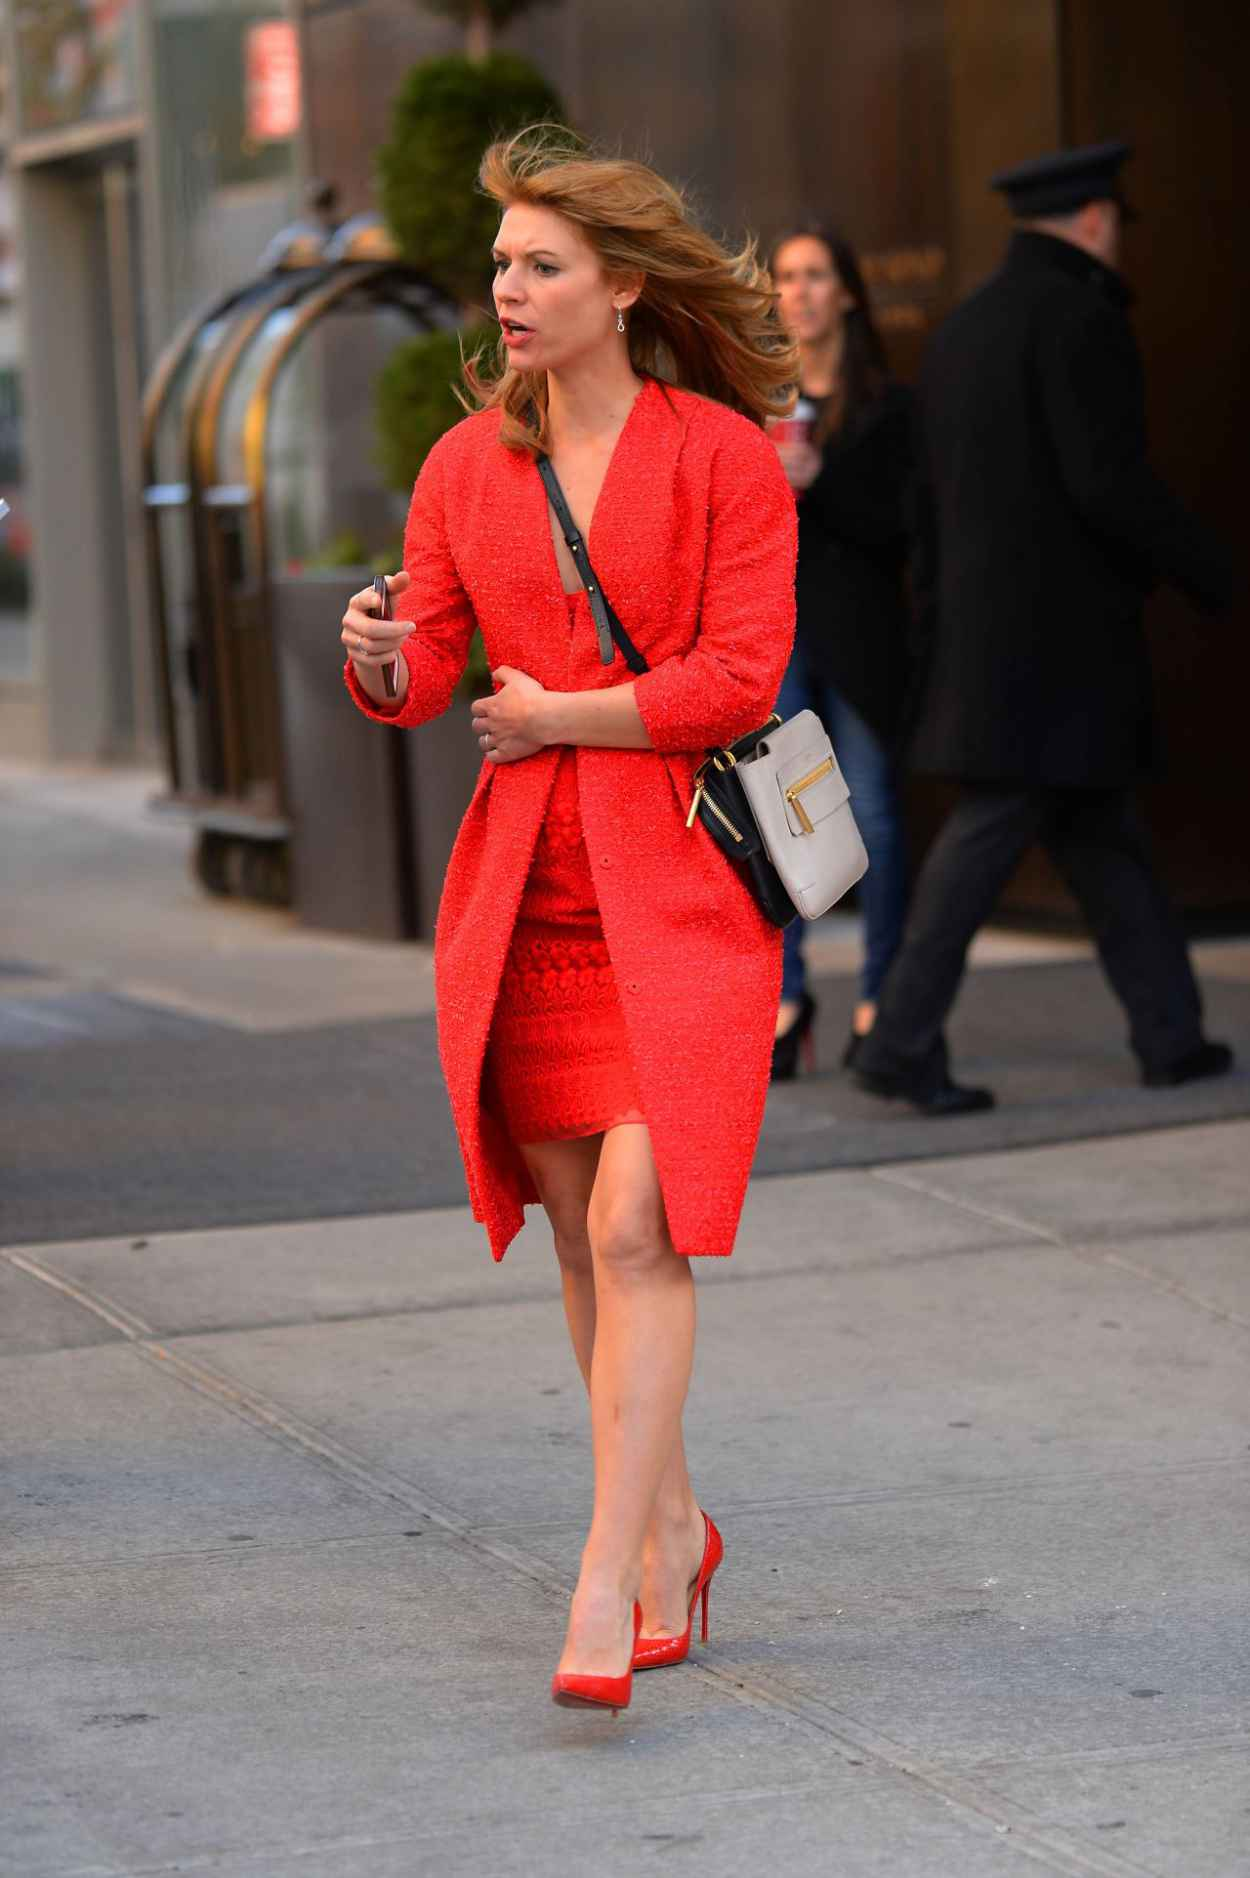 Claire Danes Leggy in Red High Heels - New York City - November 2015-1